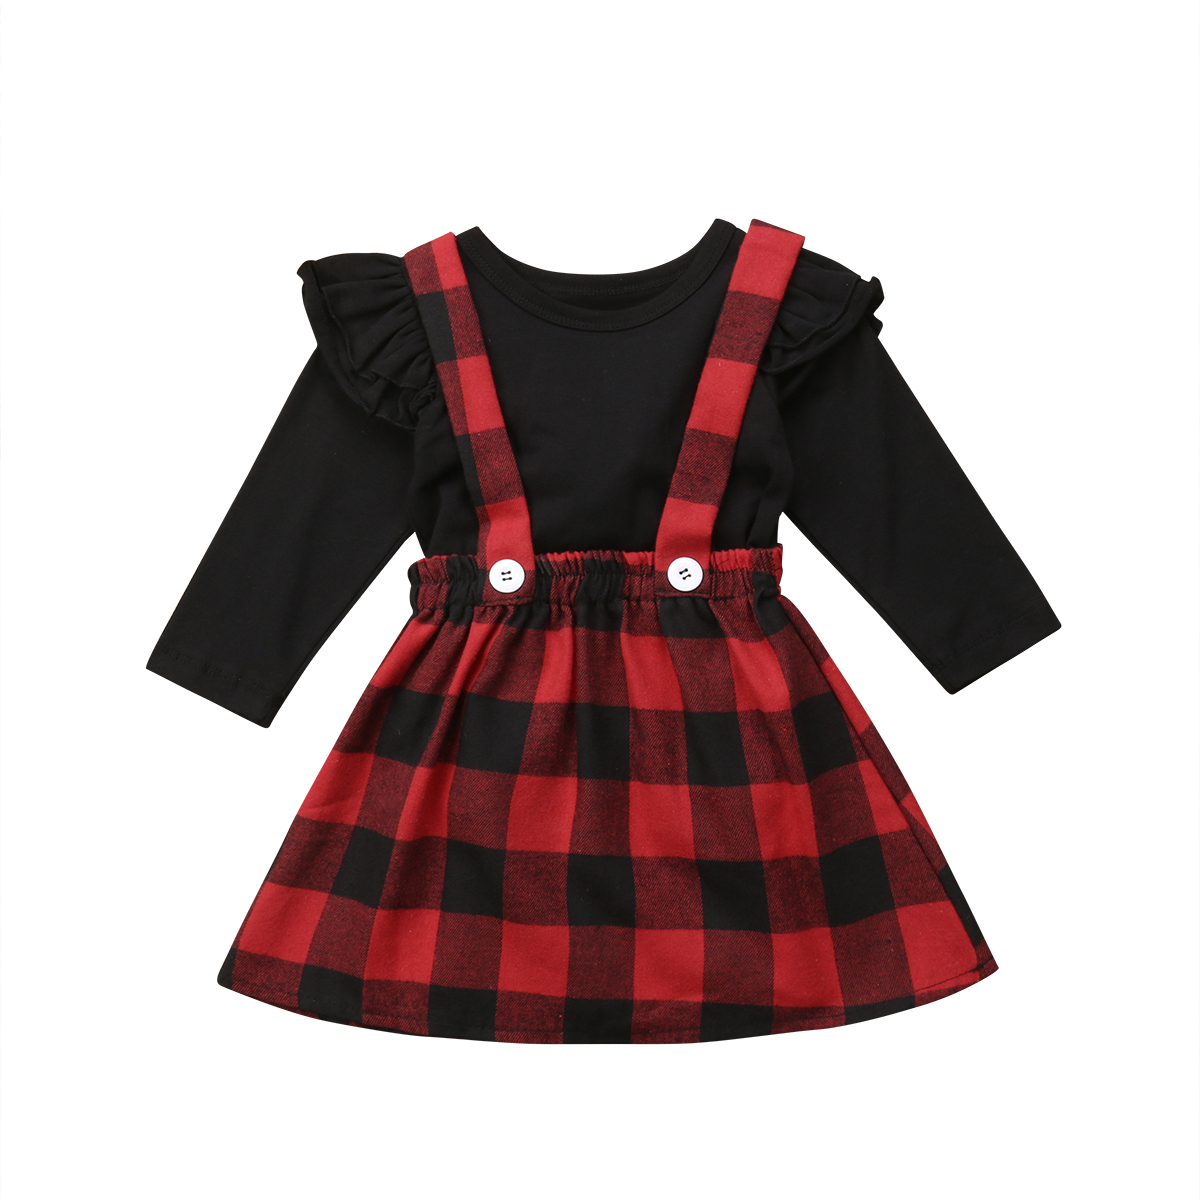 00ebb5029422 Christmas Plaid Red Dress Toddler Baby Girls Cotton Checked Outfits ...